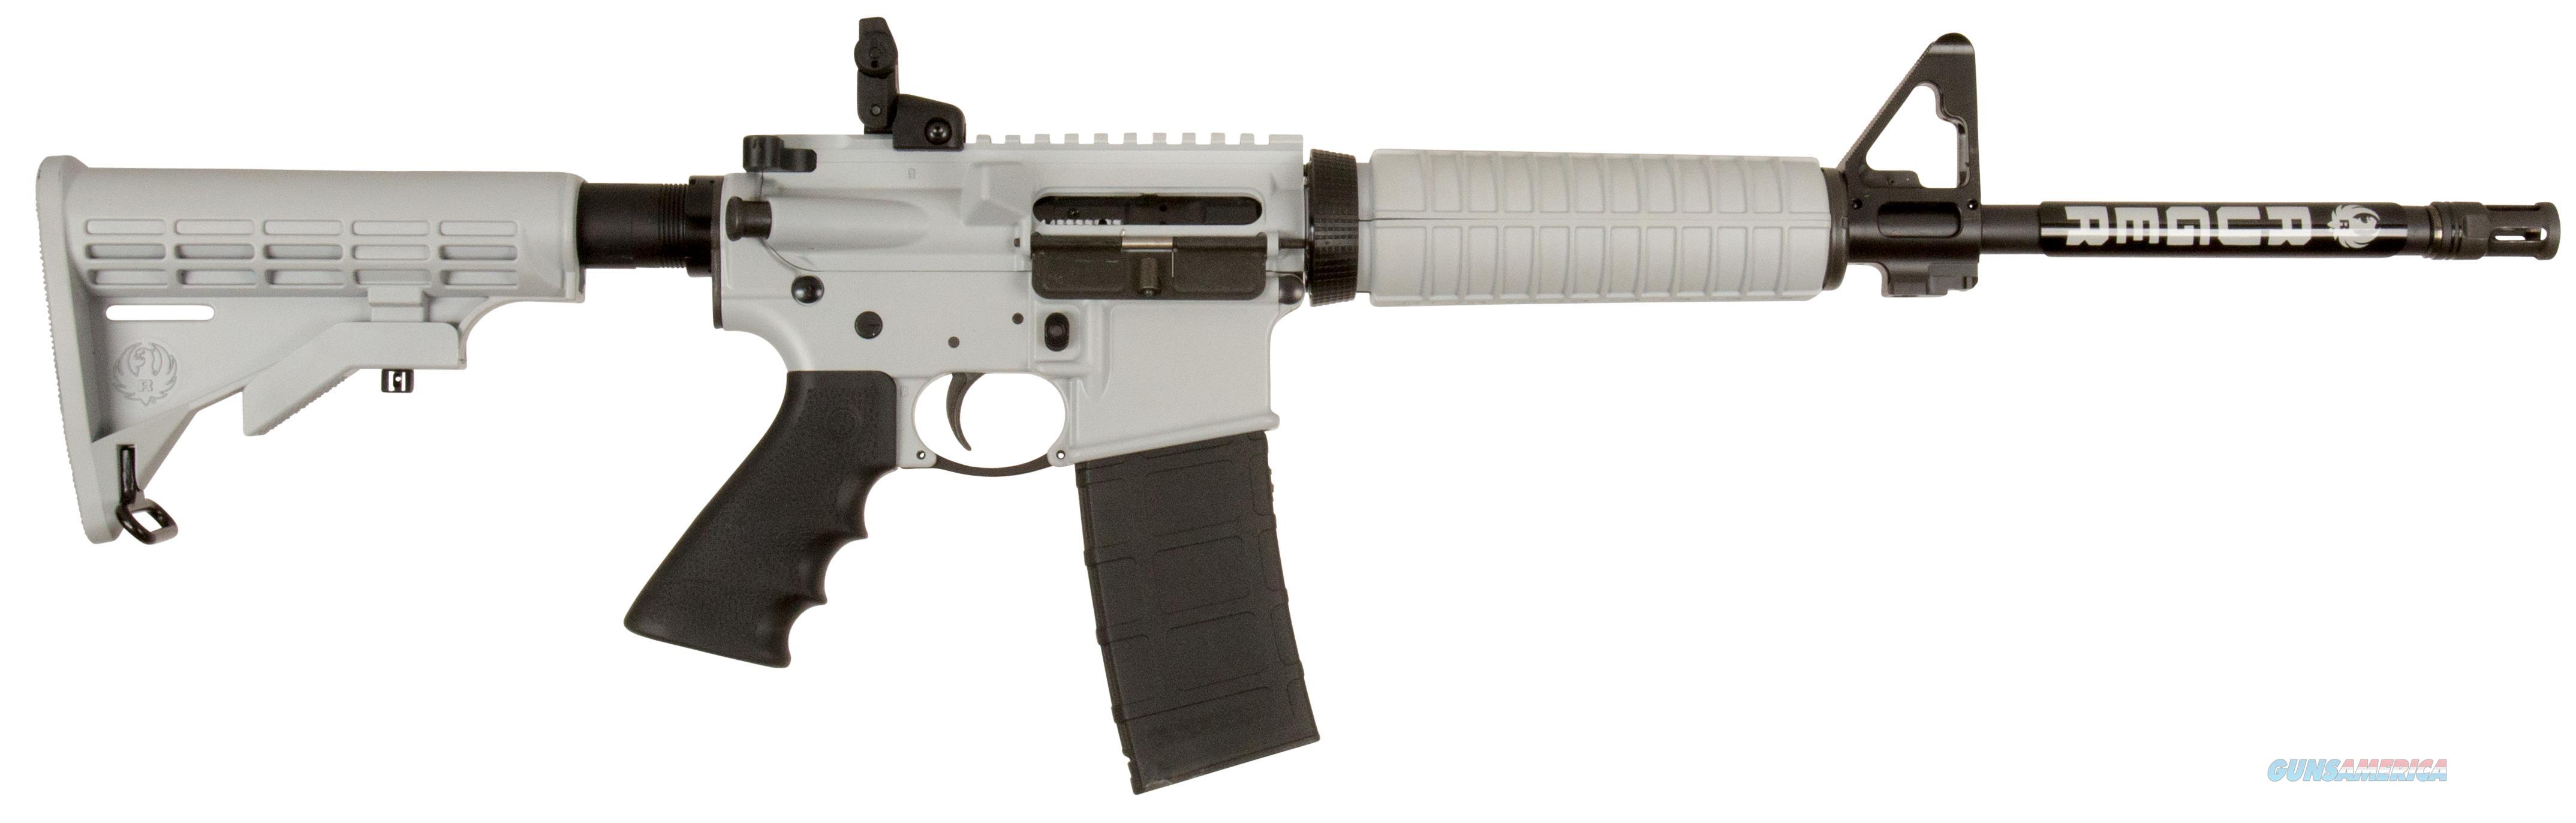 "RUGER 8505 AR556 AUTOLOADING SEMI-AUTOMATIC 223 REMINGTON/5.56 NATO 16.1"" 30+1 6 8505  Guns > Rifles > R Misc Rifles"